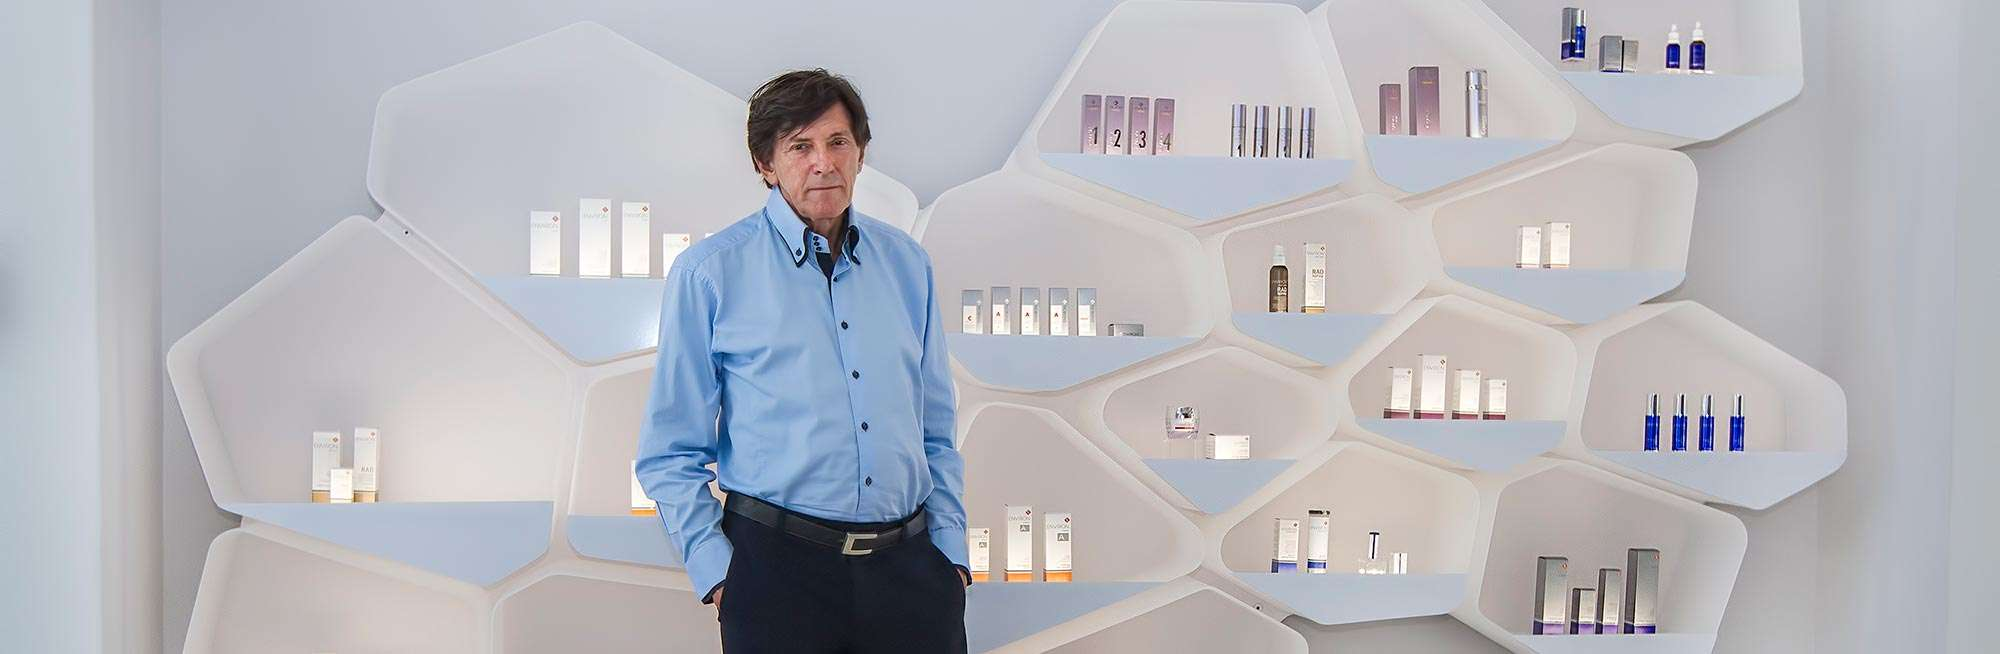 Environ® Founder image